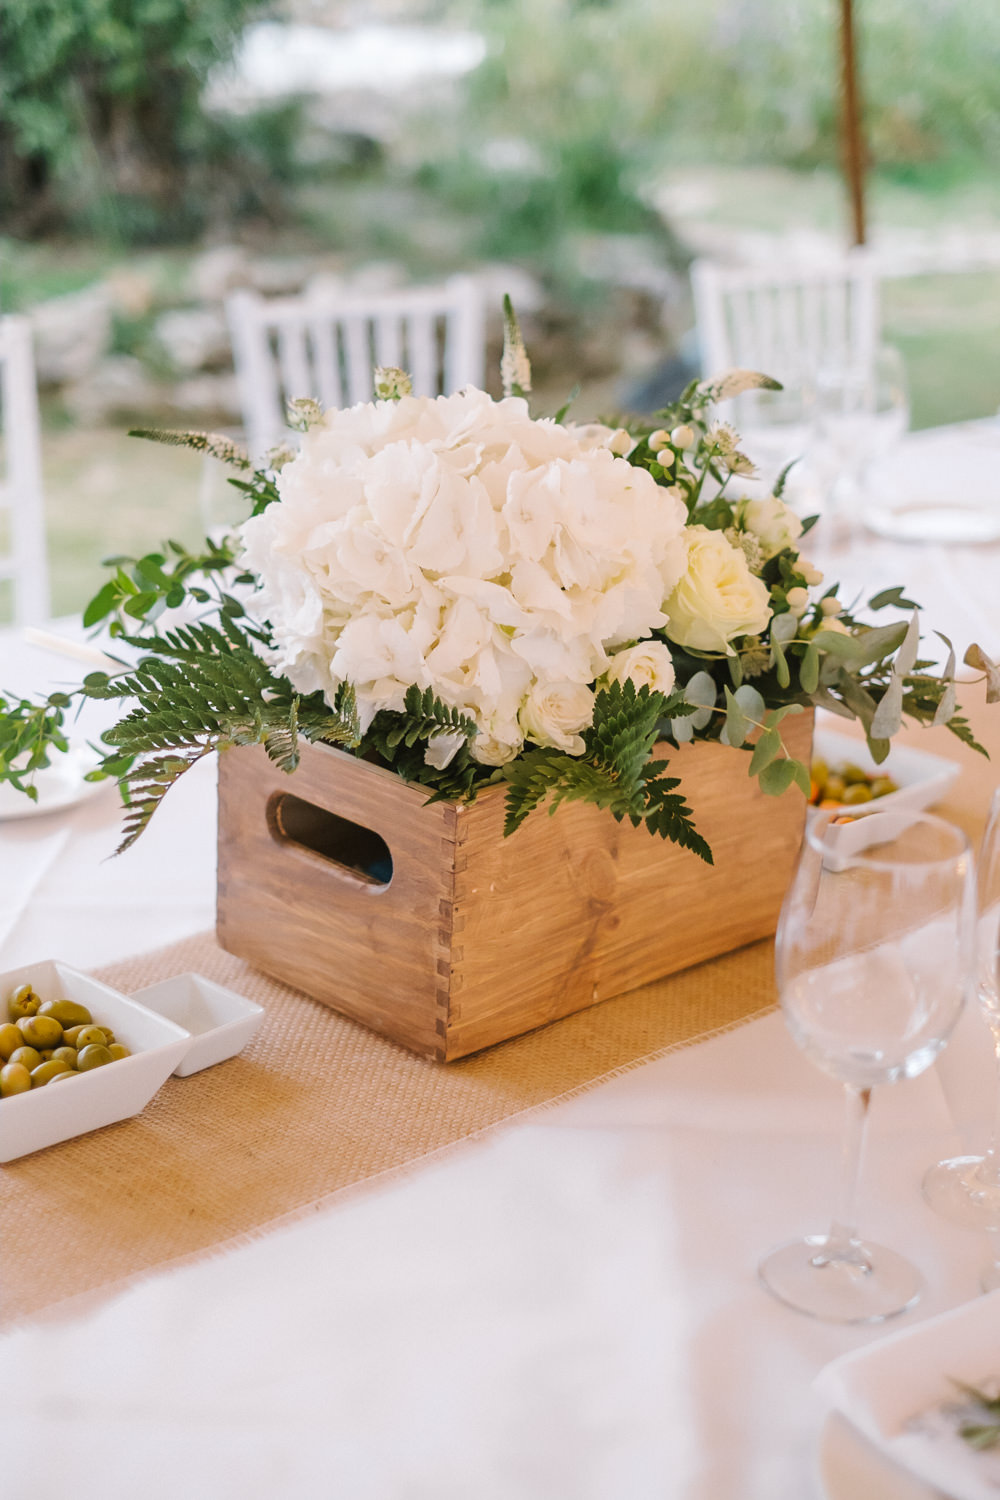 Crate Wooden Box Flowers Centrpiece Table Decor Hydrangea Rose Greenery Foliage Spain Destination Wedding Jesus Caballero Photography